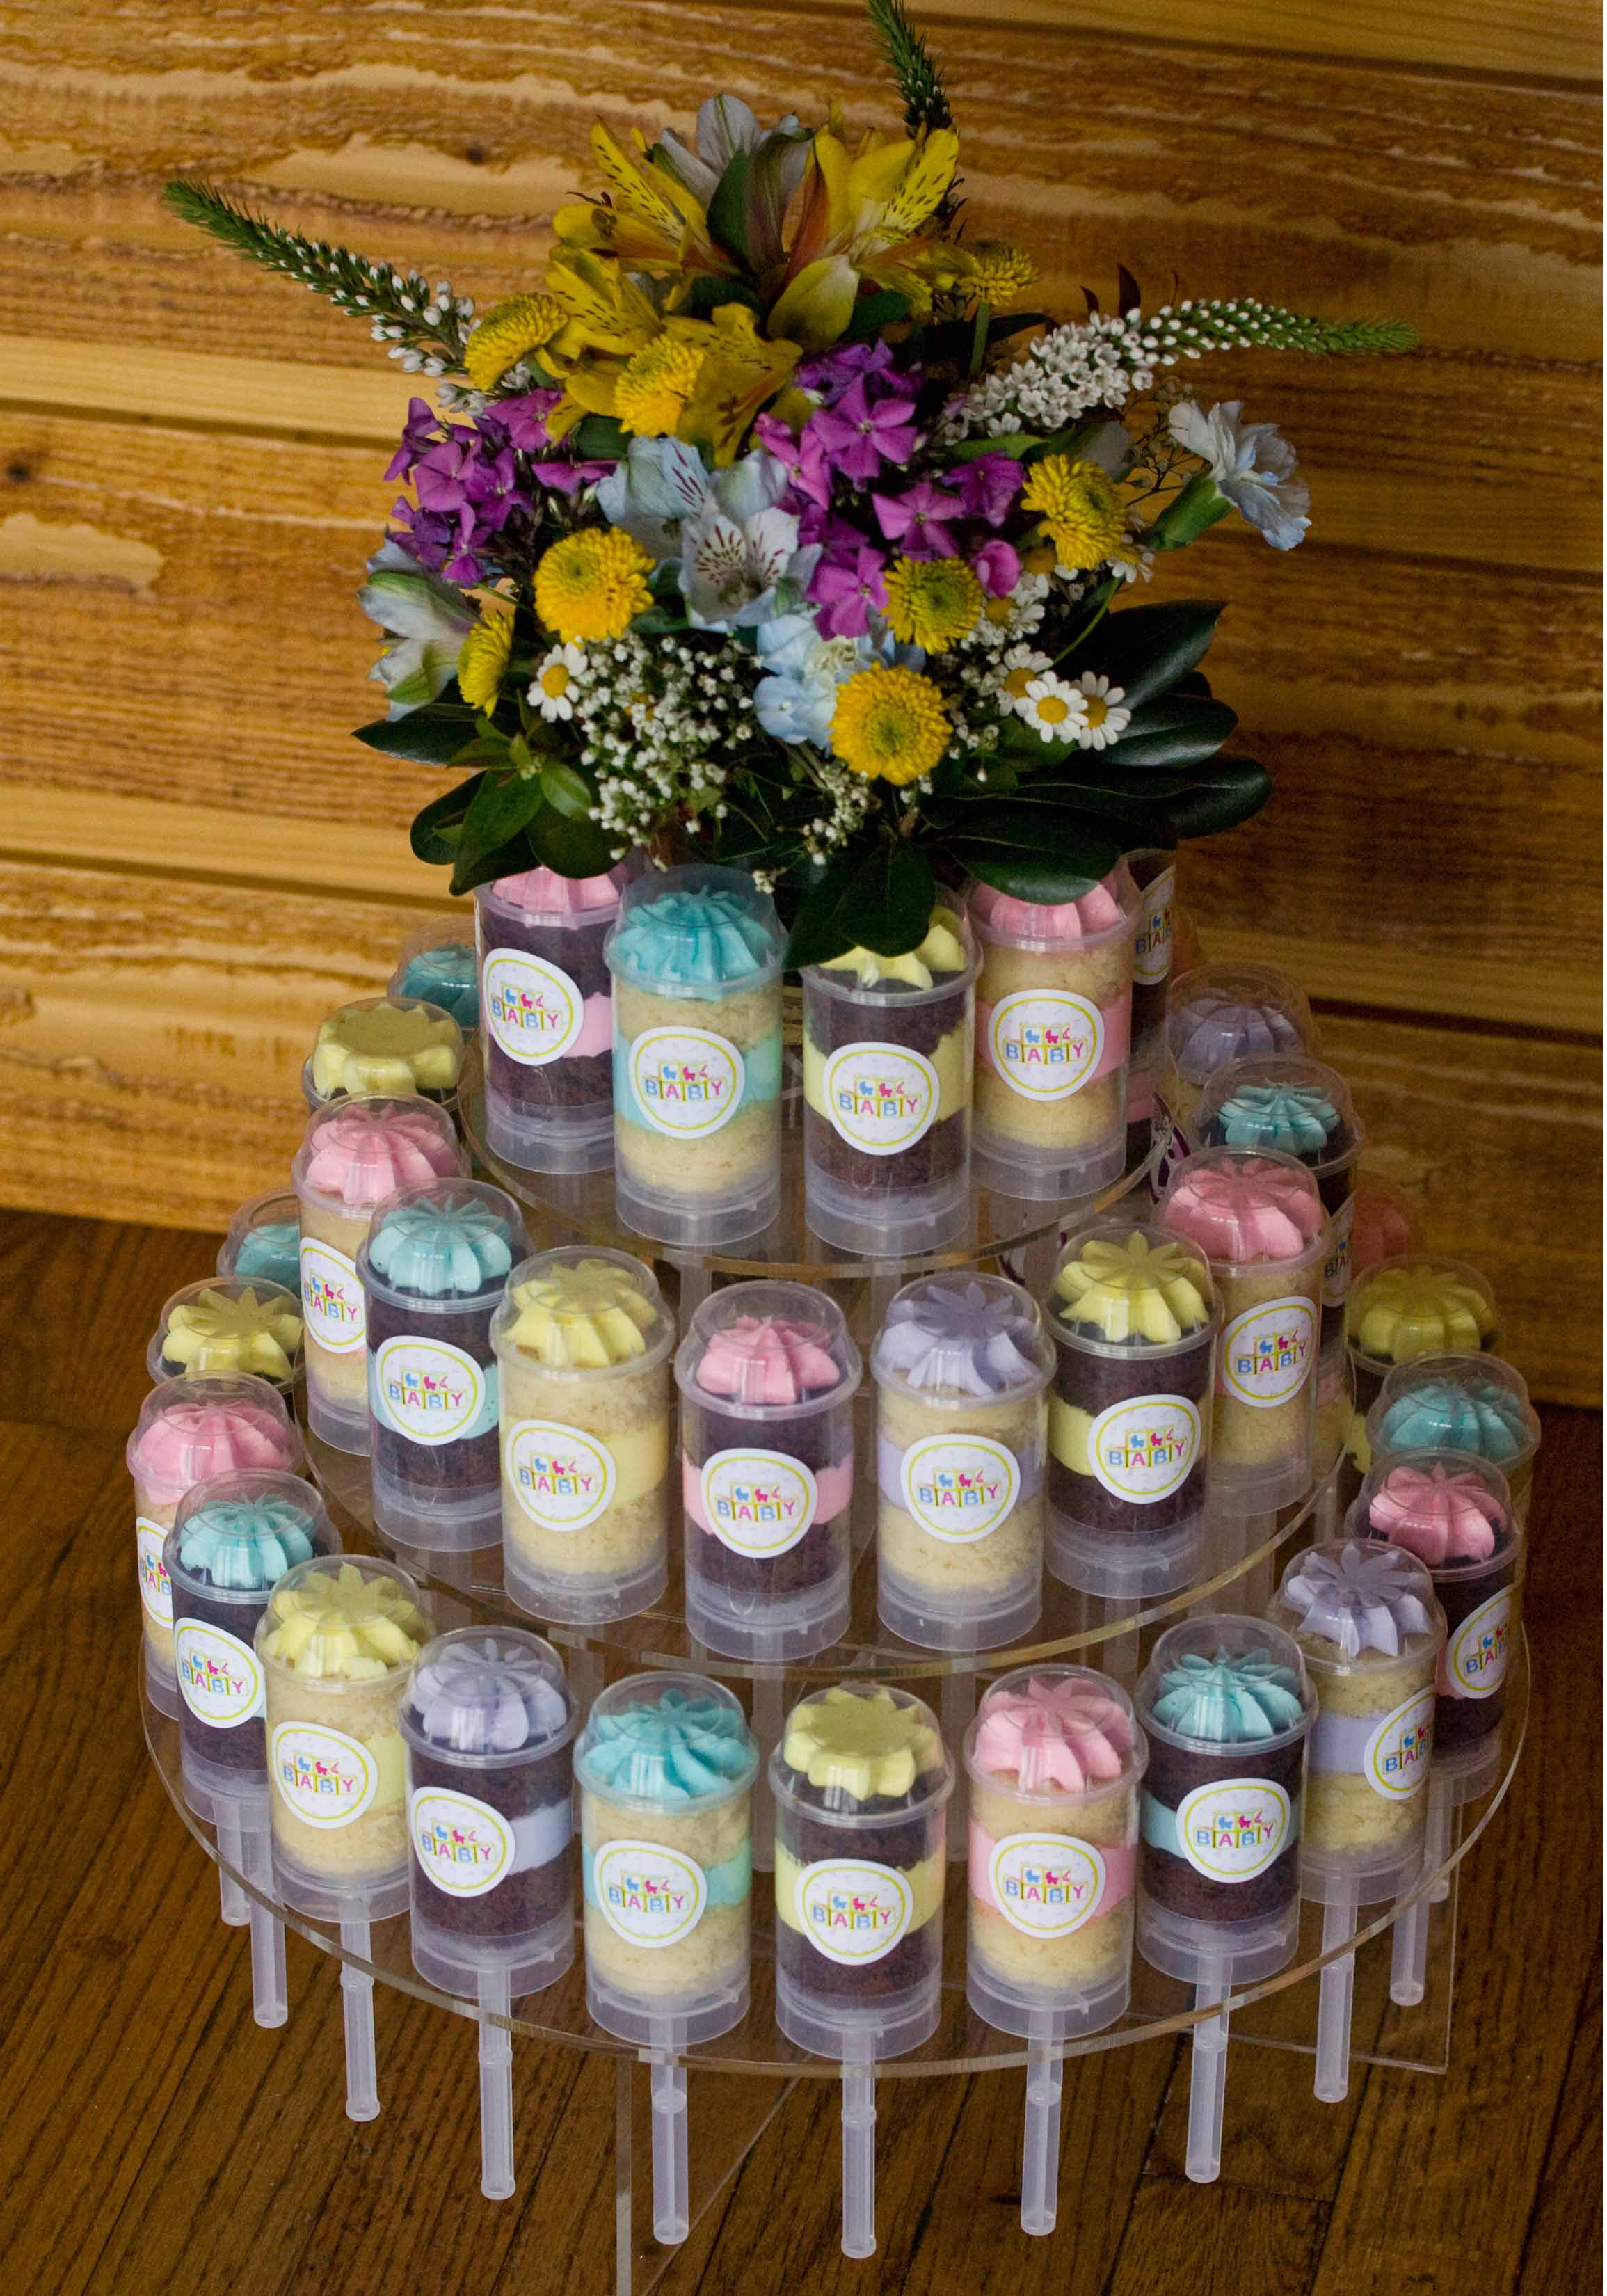 Baby Gift Edible Arrangements : Cakeslider creations? launches cupcake gift baskets for